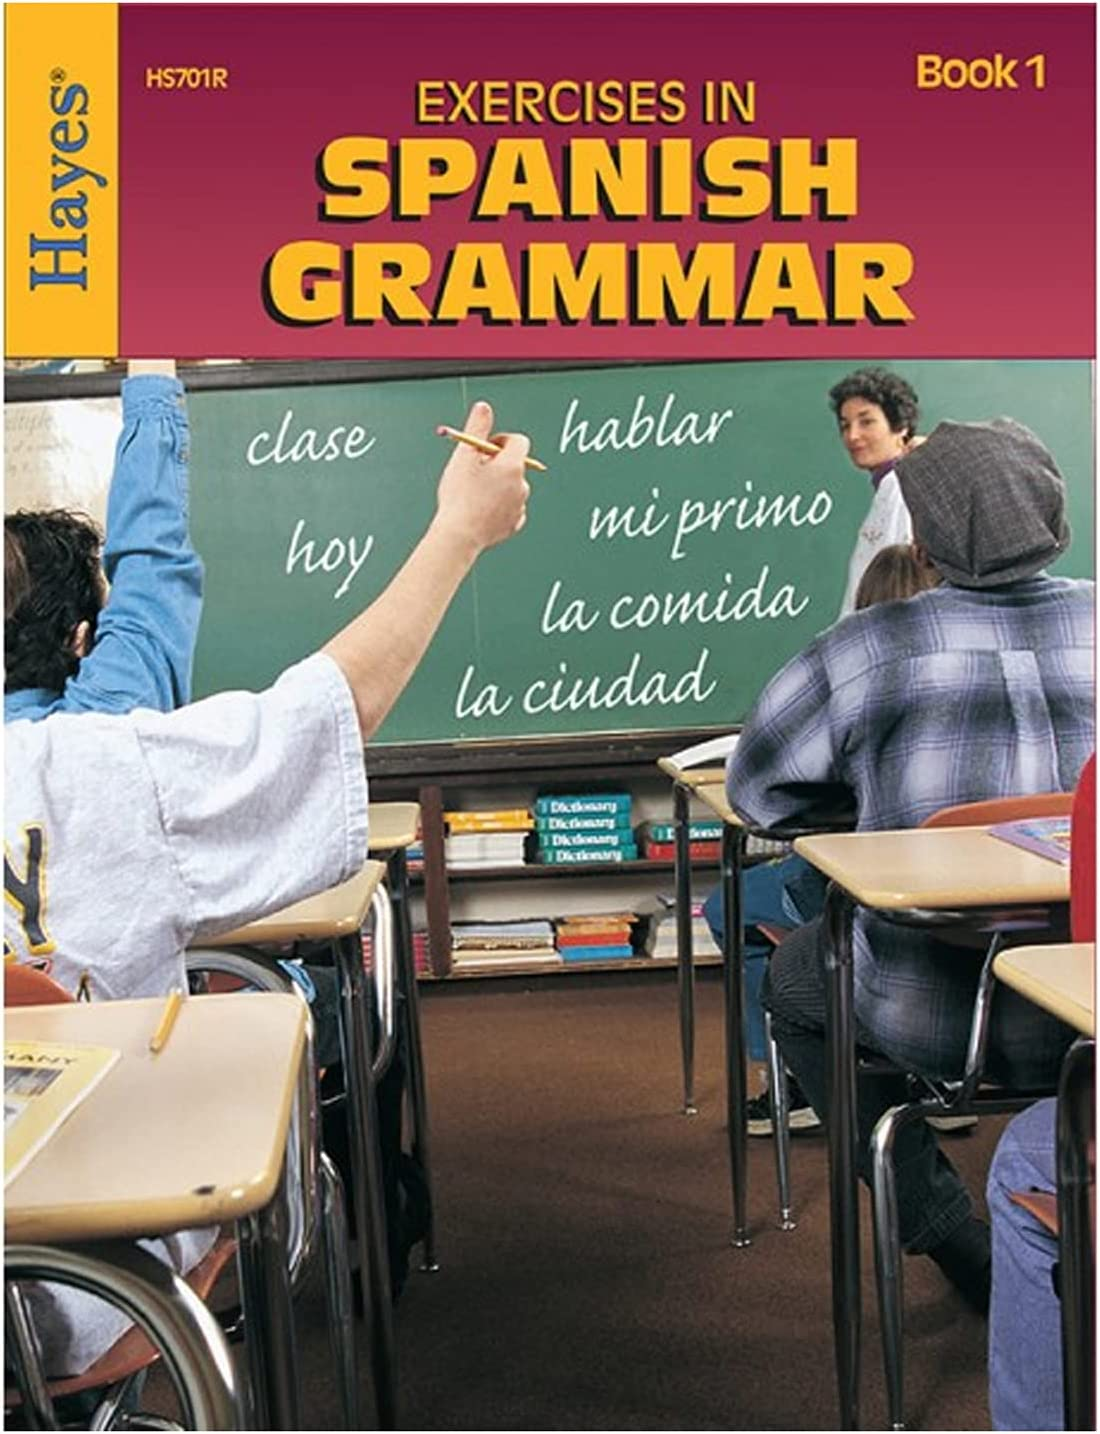 Amazon Com Hayes Exercises In Spanish Grammar Book 1 Office Products